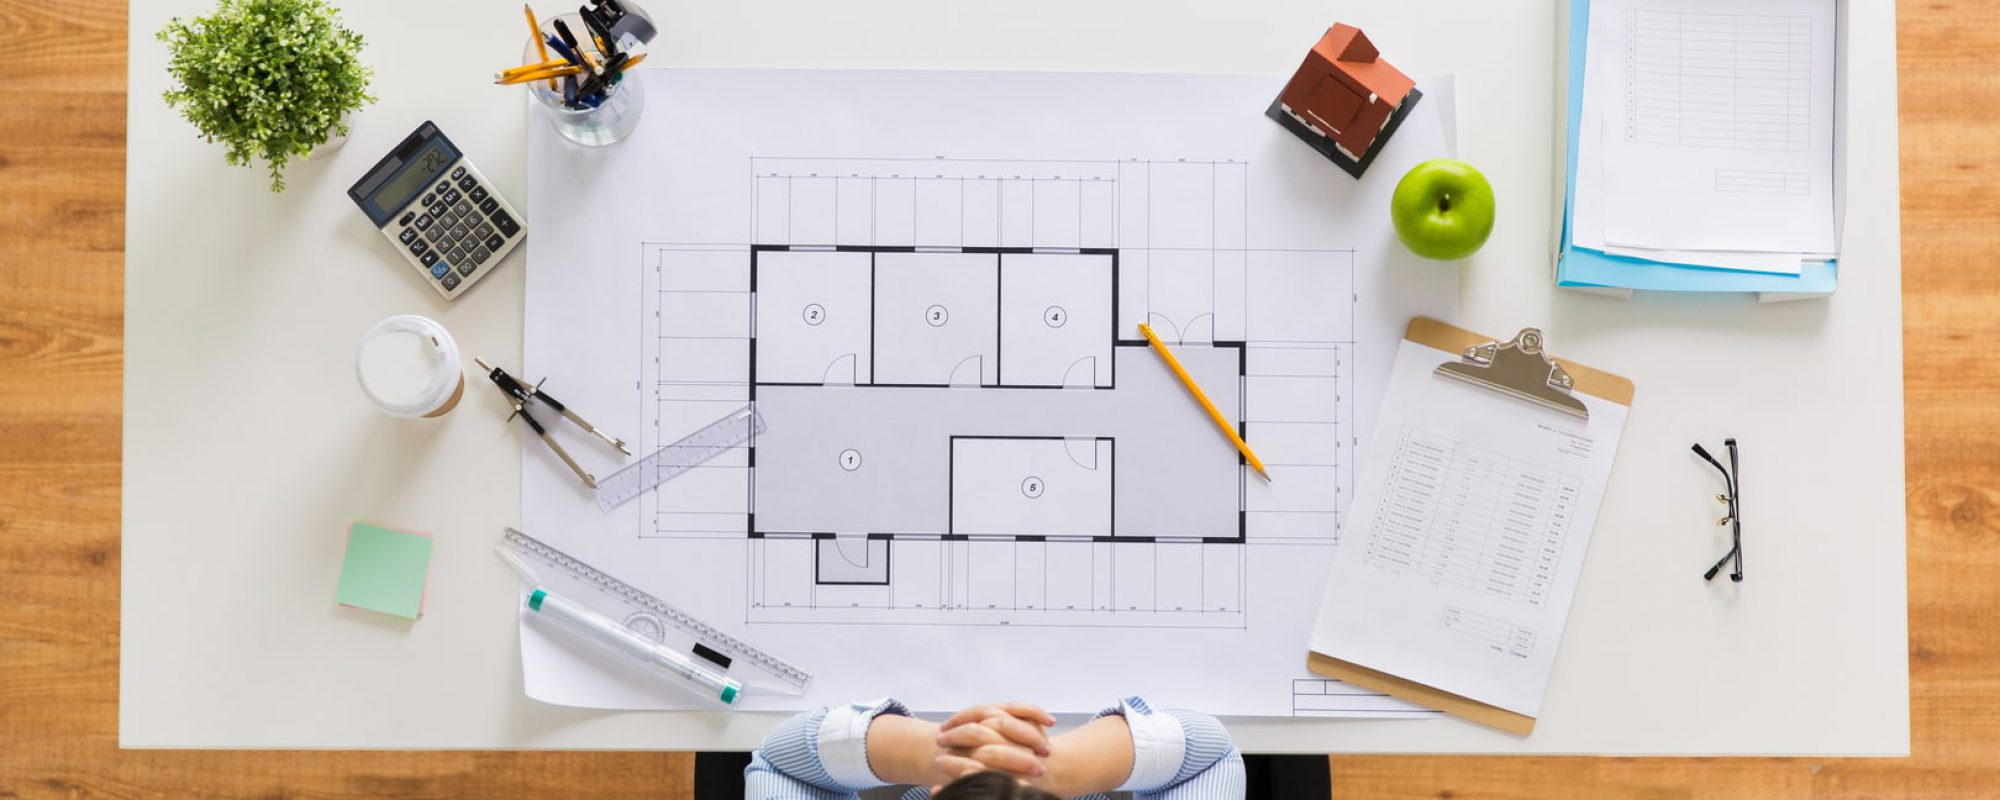 architect-with-house-blueprint-at-office-PDQRLAX-min